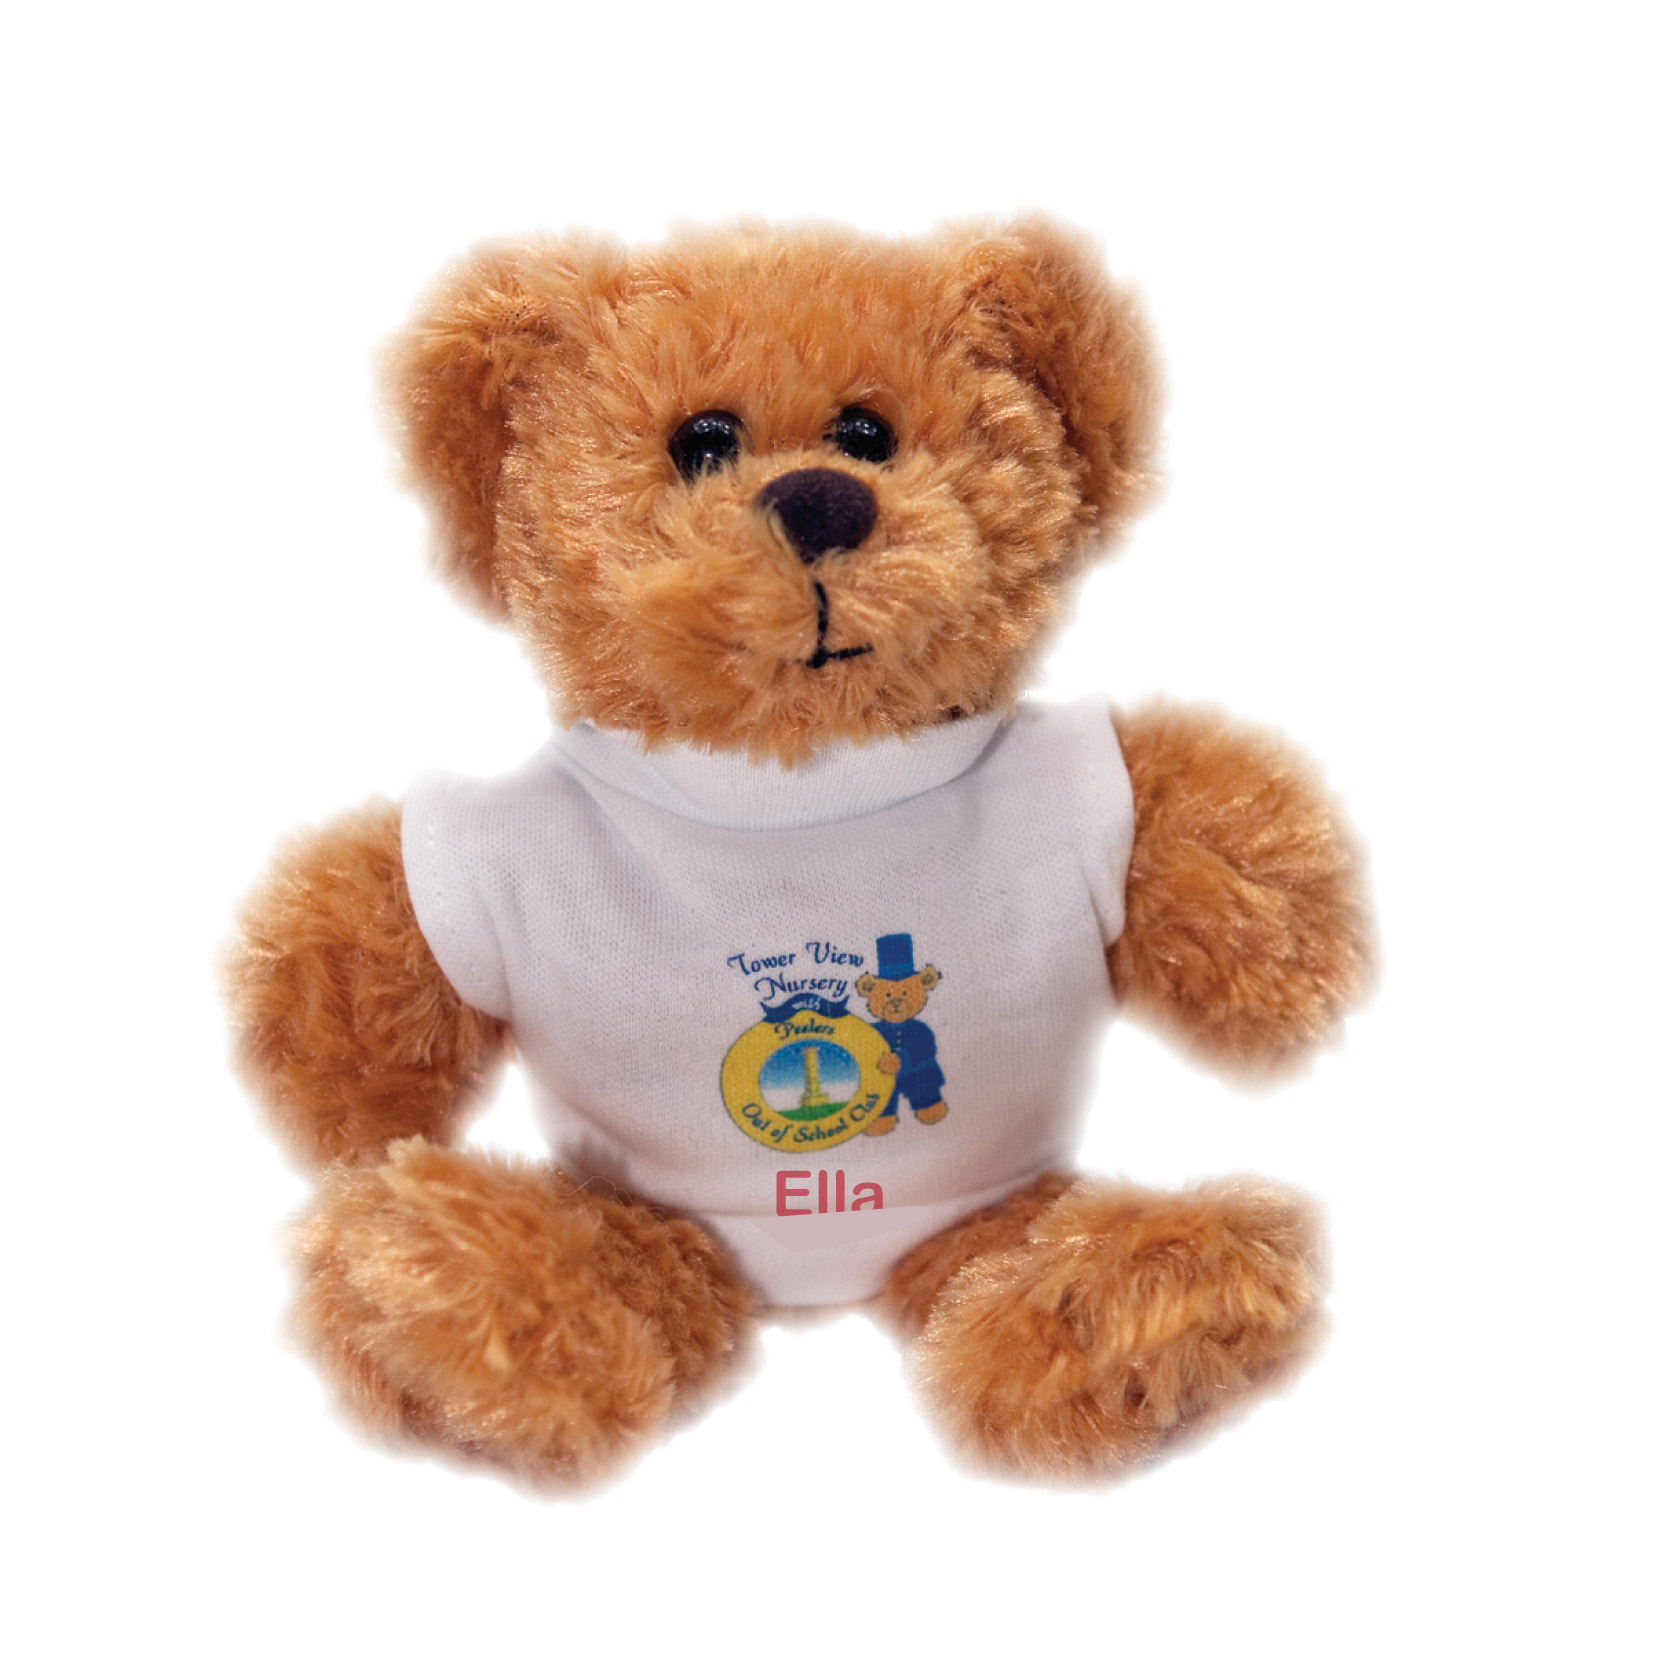 View our teddies